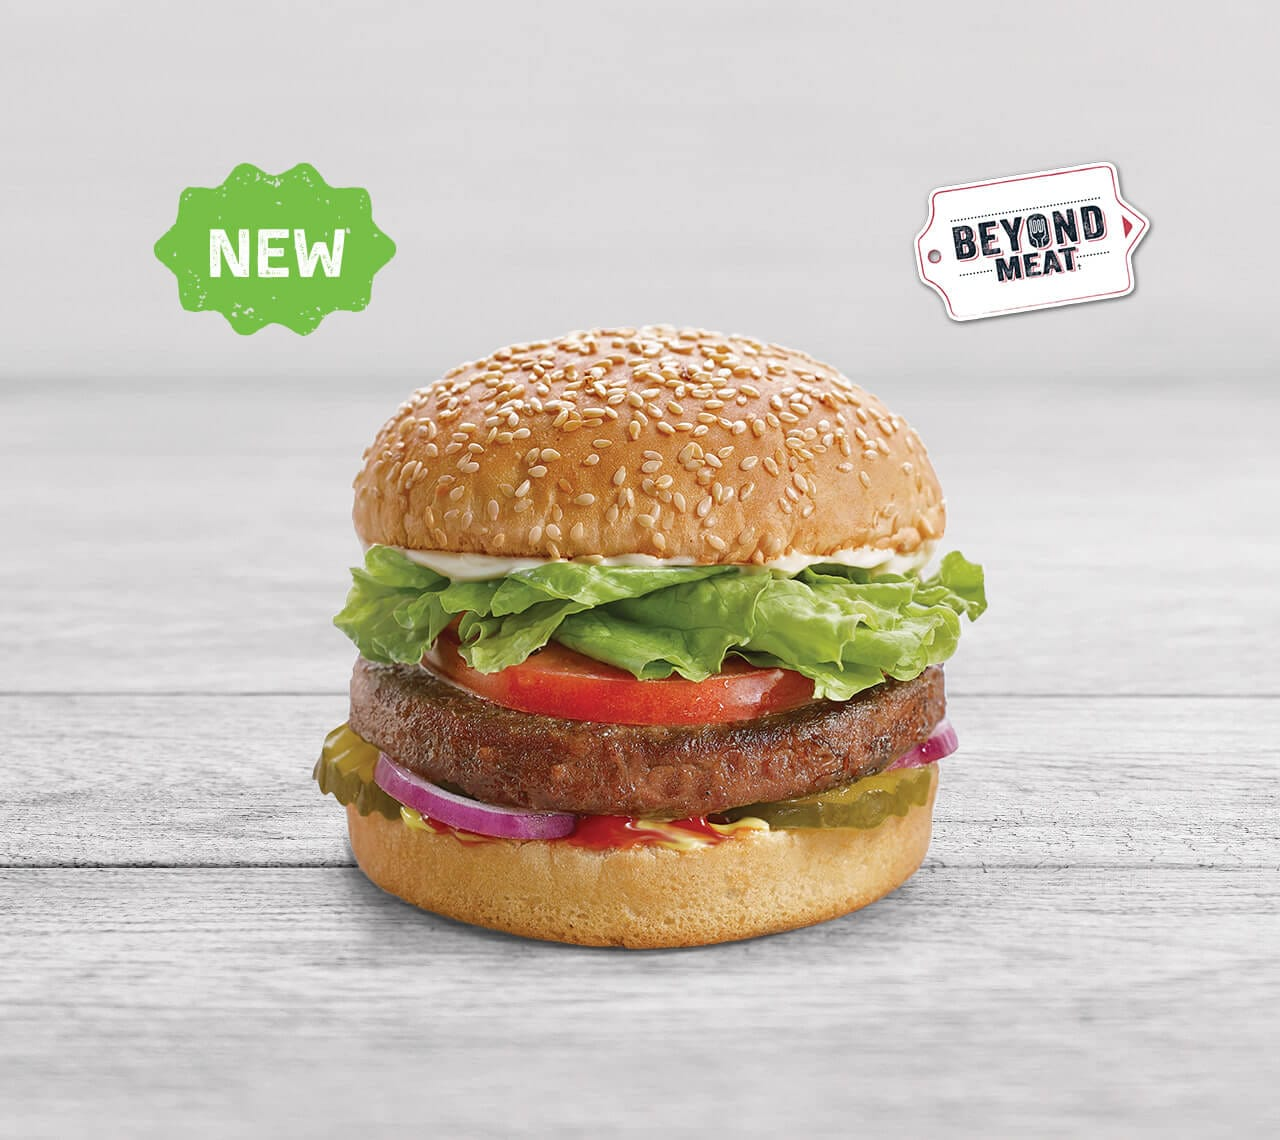 """""""The Beyond Burger™ is the world's first plant-based burger that looks, cooks, and tastes like a fresh beef burger. It has all the juicy, meat deliciousness of a traditional burger, but comes with the upsides of a plant-based meal. The Beyond Burger™ packs 20 g of plant-based protein and has no GMOs, soy or gluten."""" - - Beyond Meat"""